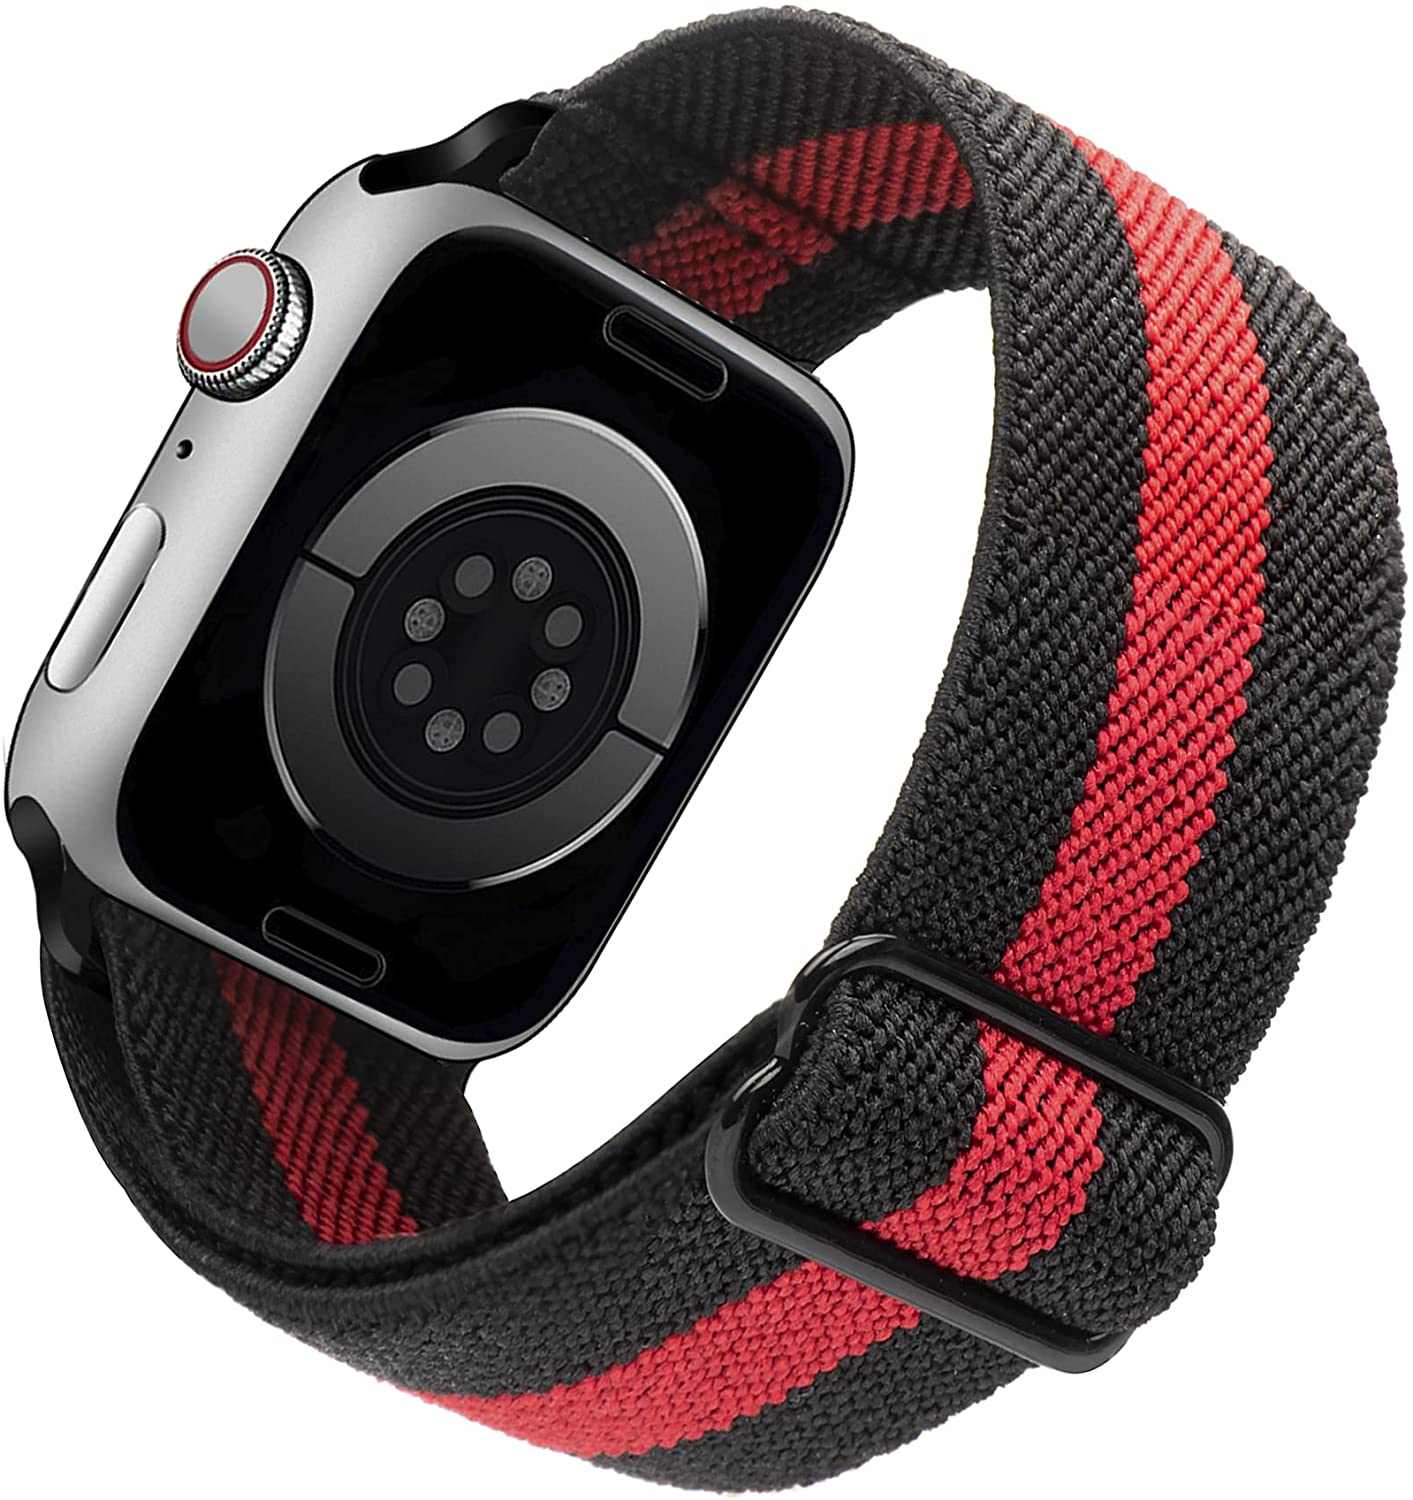 Arae Stretchy Nylon Watch Band Compatible with Apple Watch Band 40mm 38mm Adjustable Elastic Sport Band for iWatch Series 6 5 4 SE 3 2 1 Women Men - Black+Red, 38/40mm